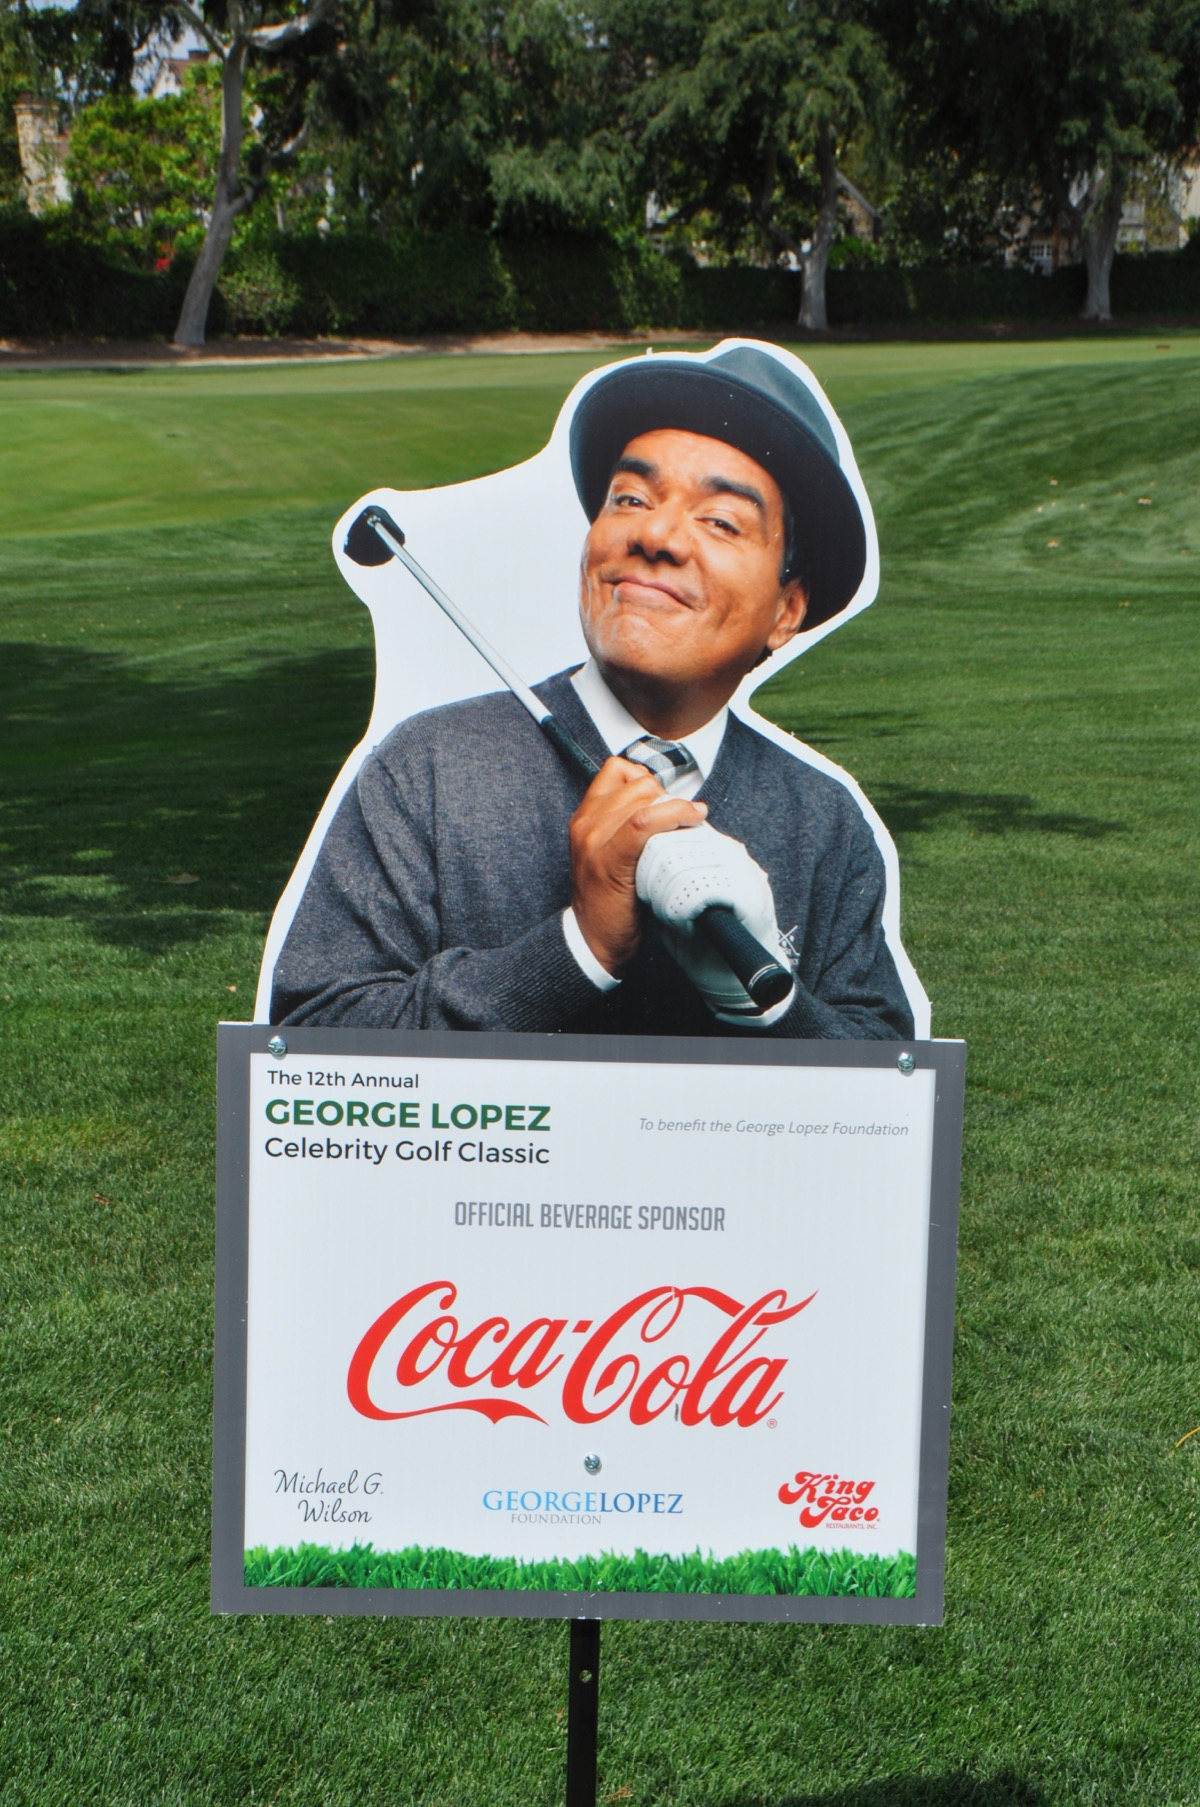 12th Annual George Lopez Celebrity Golf Classic Photos - 97.jpg